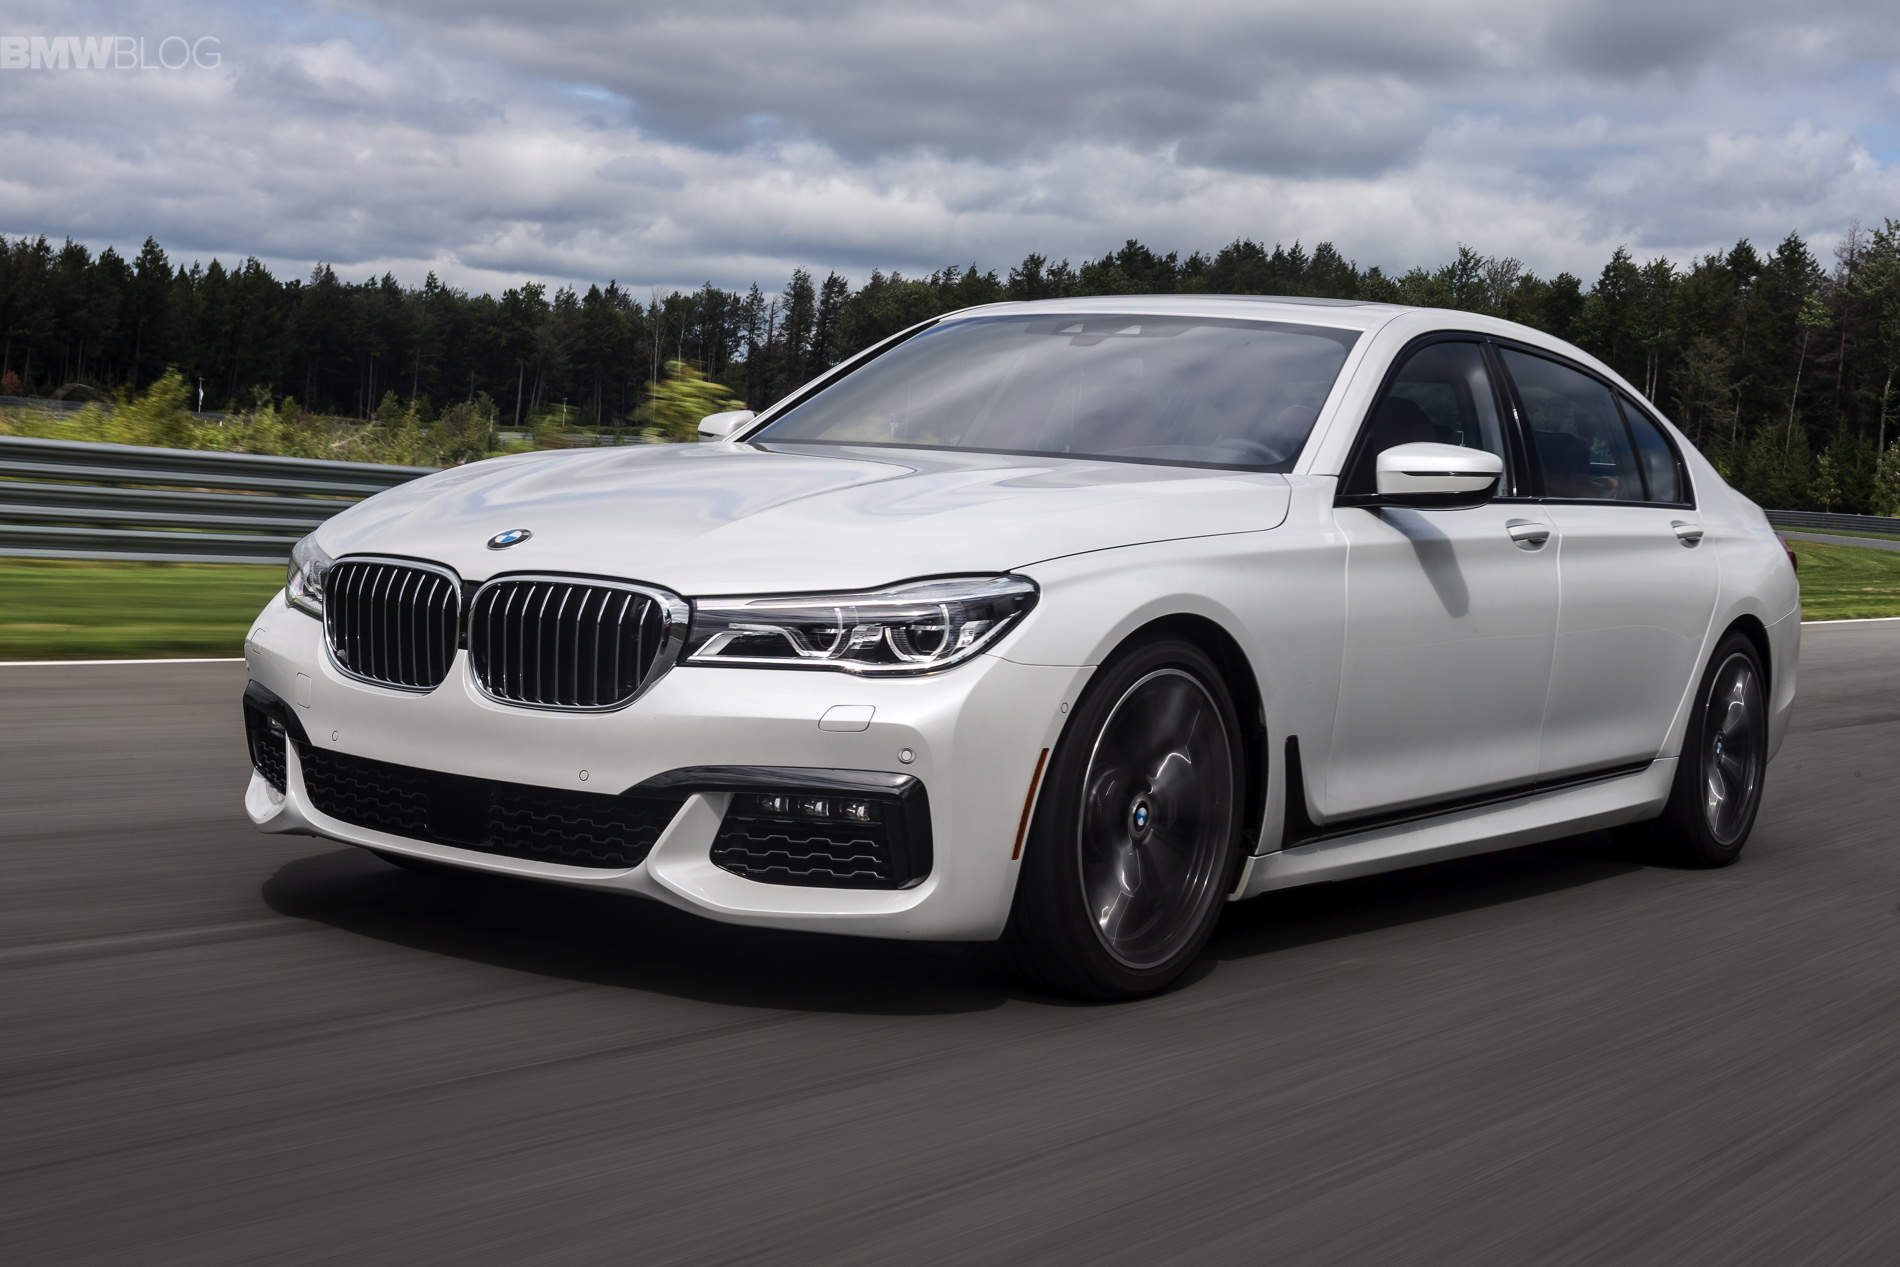 Bmw 7 Series Wallpapers Vehicles Hq Bmw 7 Series Pictures 4k Wallpapers 2019